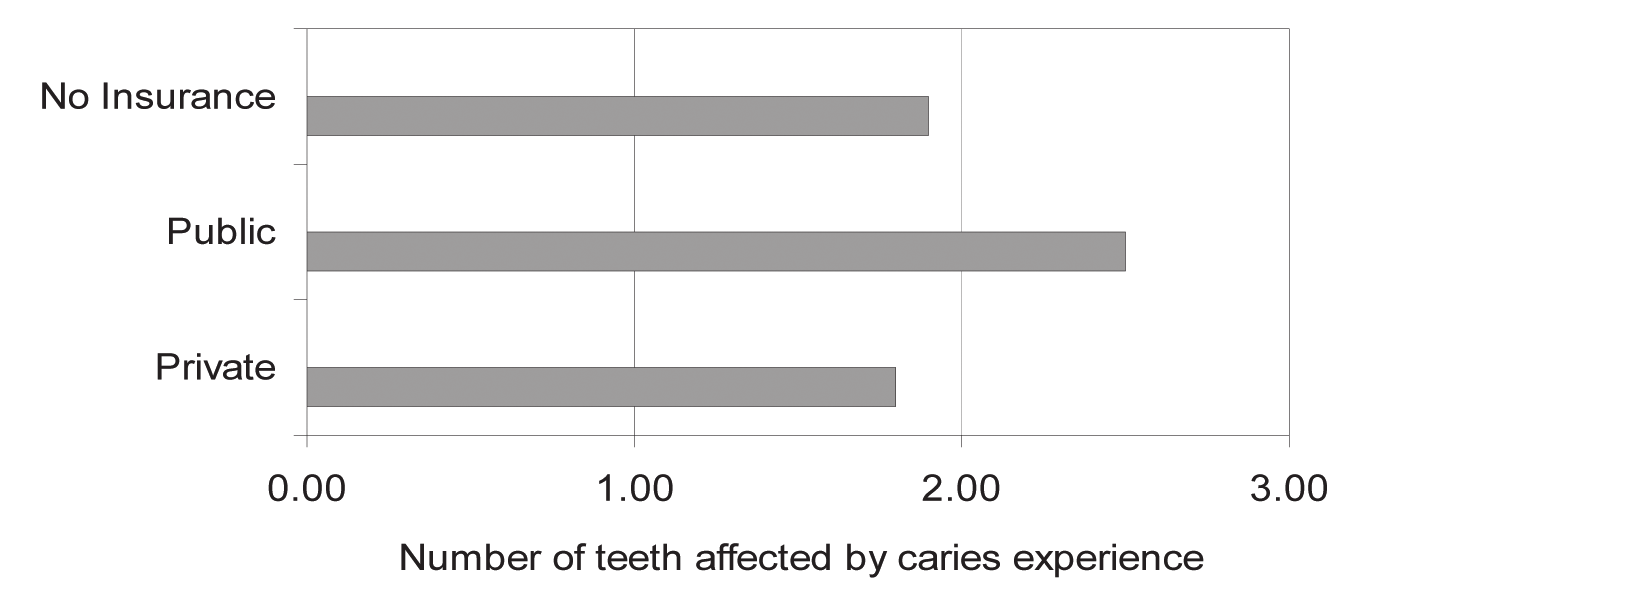 15 Caries Experience continued Figure 2: Average number of teeth affected by caries experience among Michigan 3rd grade children with any caries experience, by type of dental insurance and